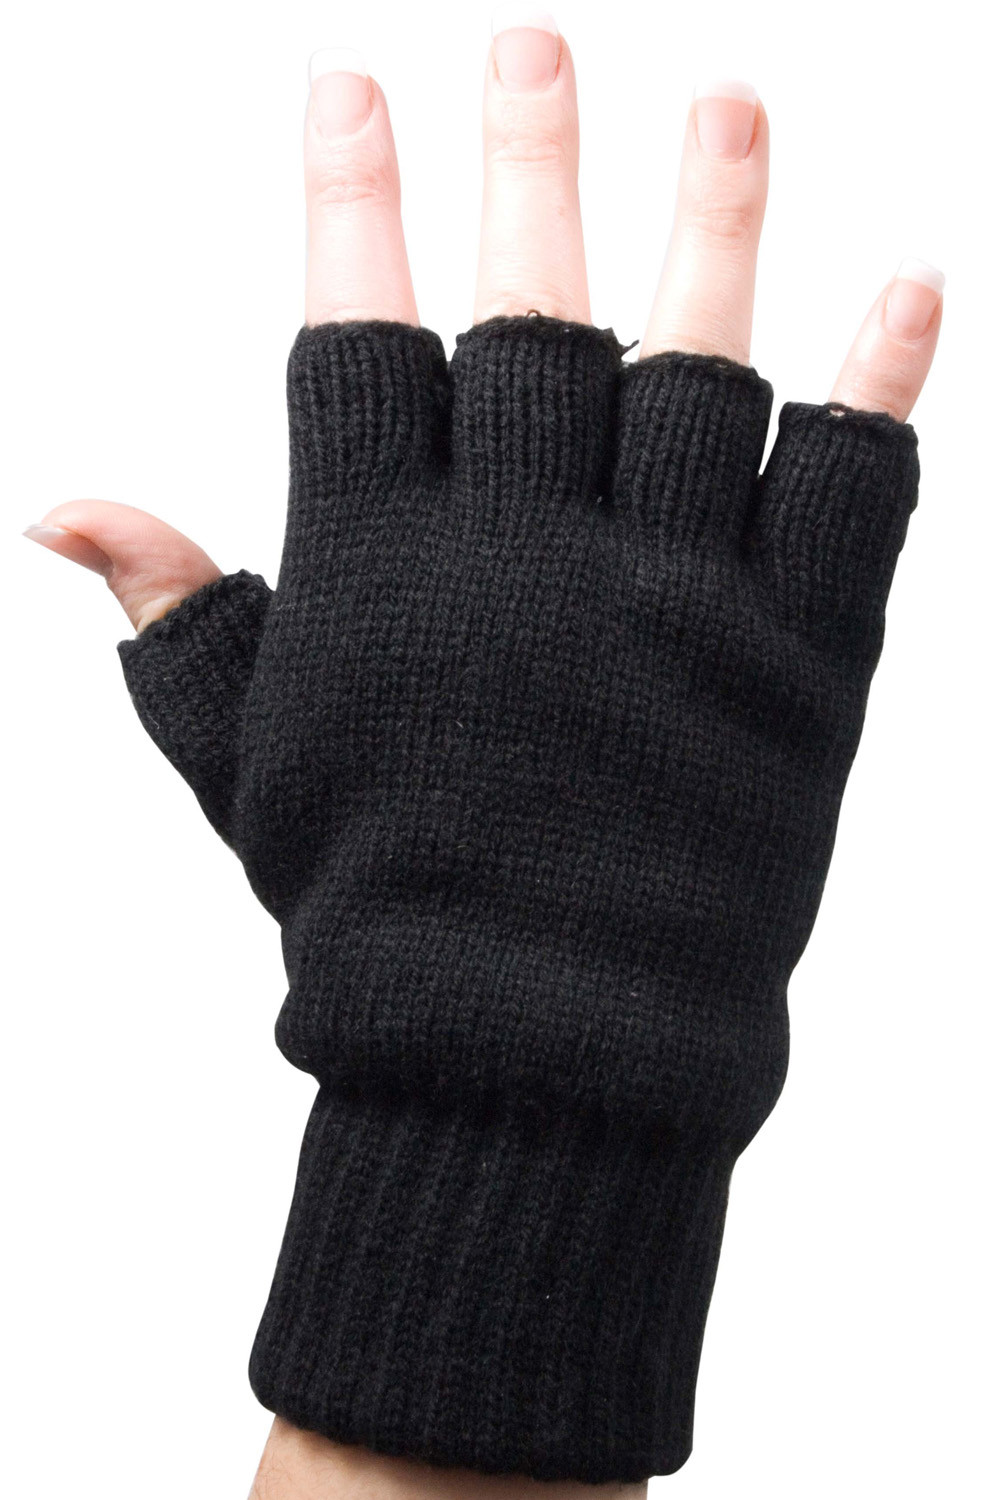 Awesome Rock Beats Airbender Fingerless Gloves Mittens Of Awesome 47 Models Fingerless Gloves Mittens